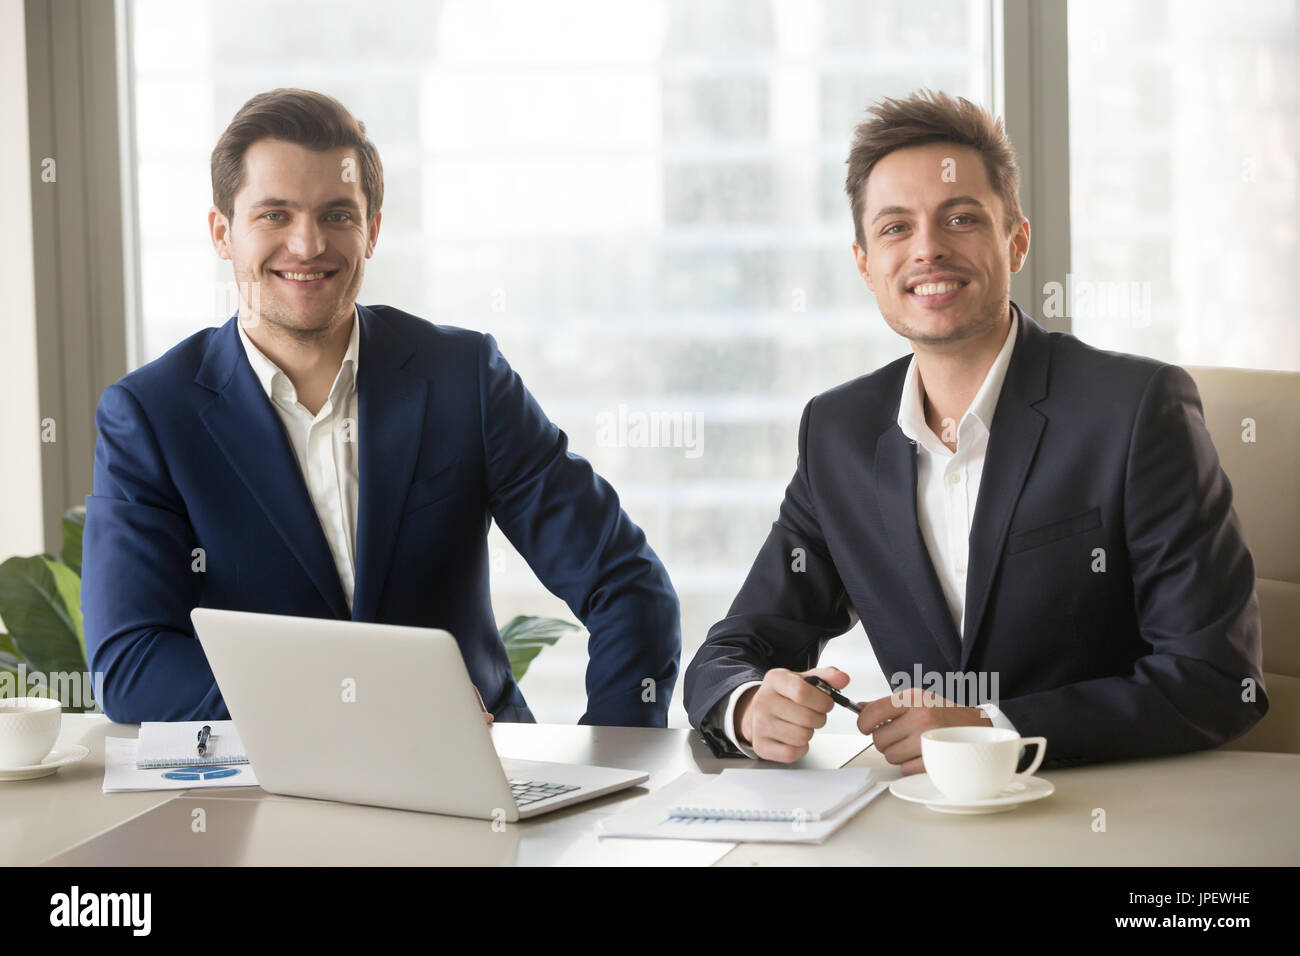 Two businessmen, financial analysts or investment advisers looki - Stock Image